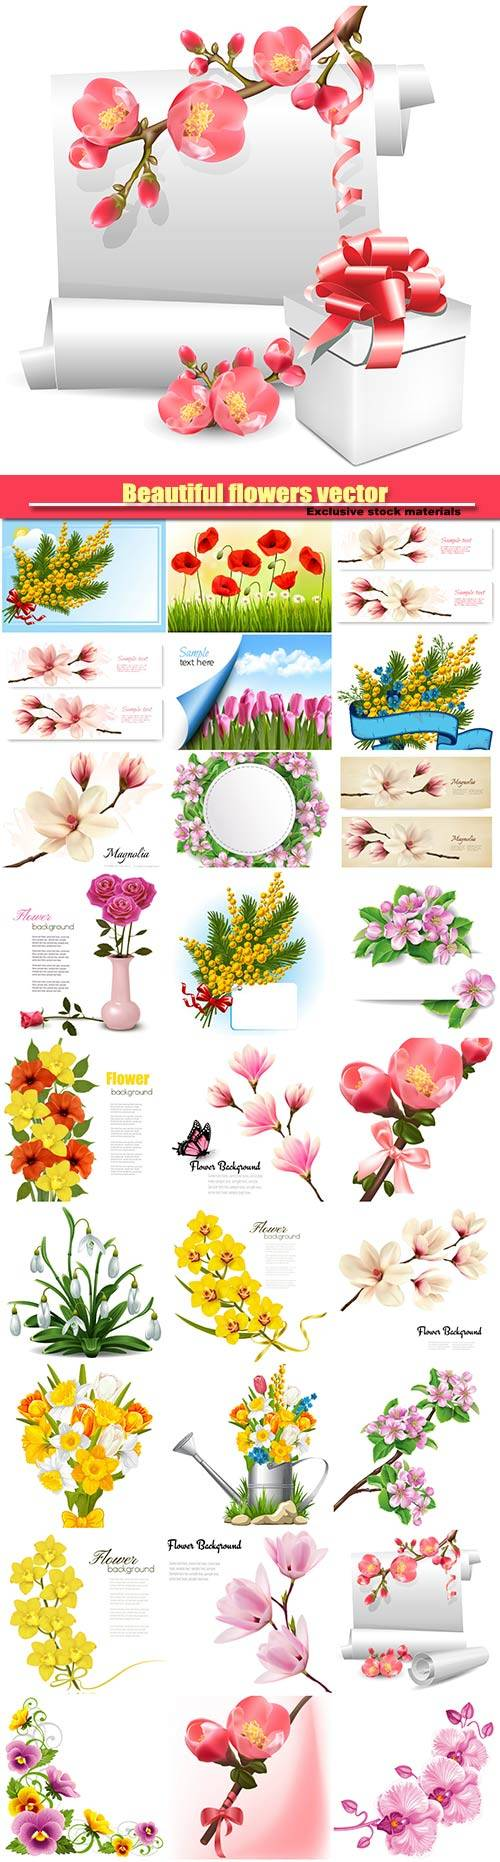 Beautiful flowers vector, daffodils, orchids, magnolia, spring flowers